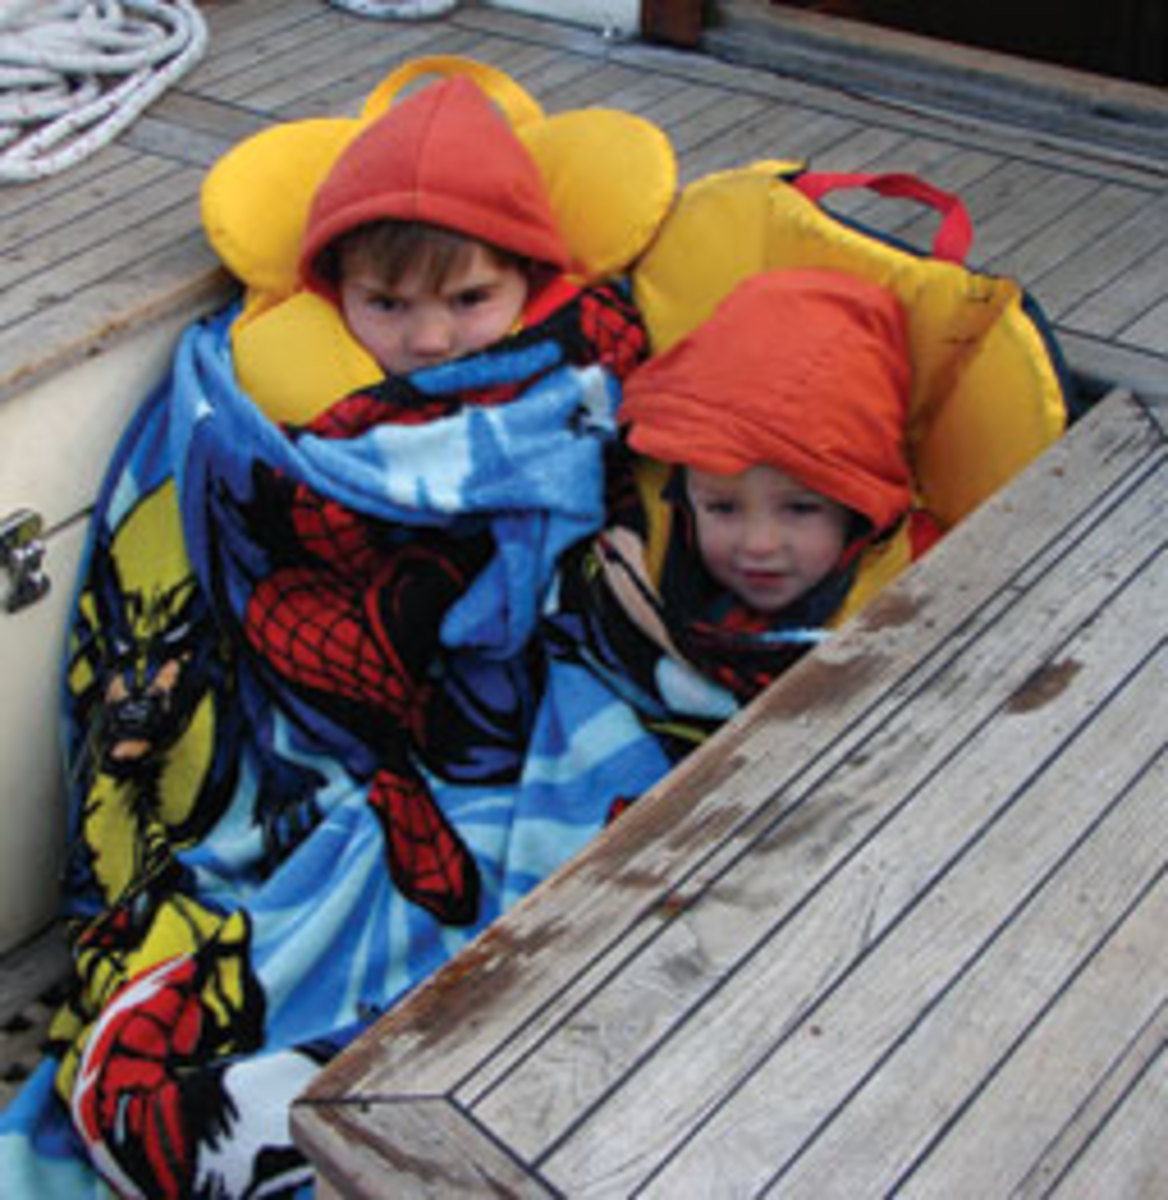 Emil and his younger brother, Peter, stay warm and safe on a chilly day for sailing.